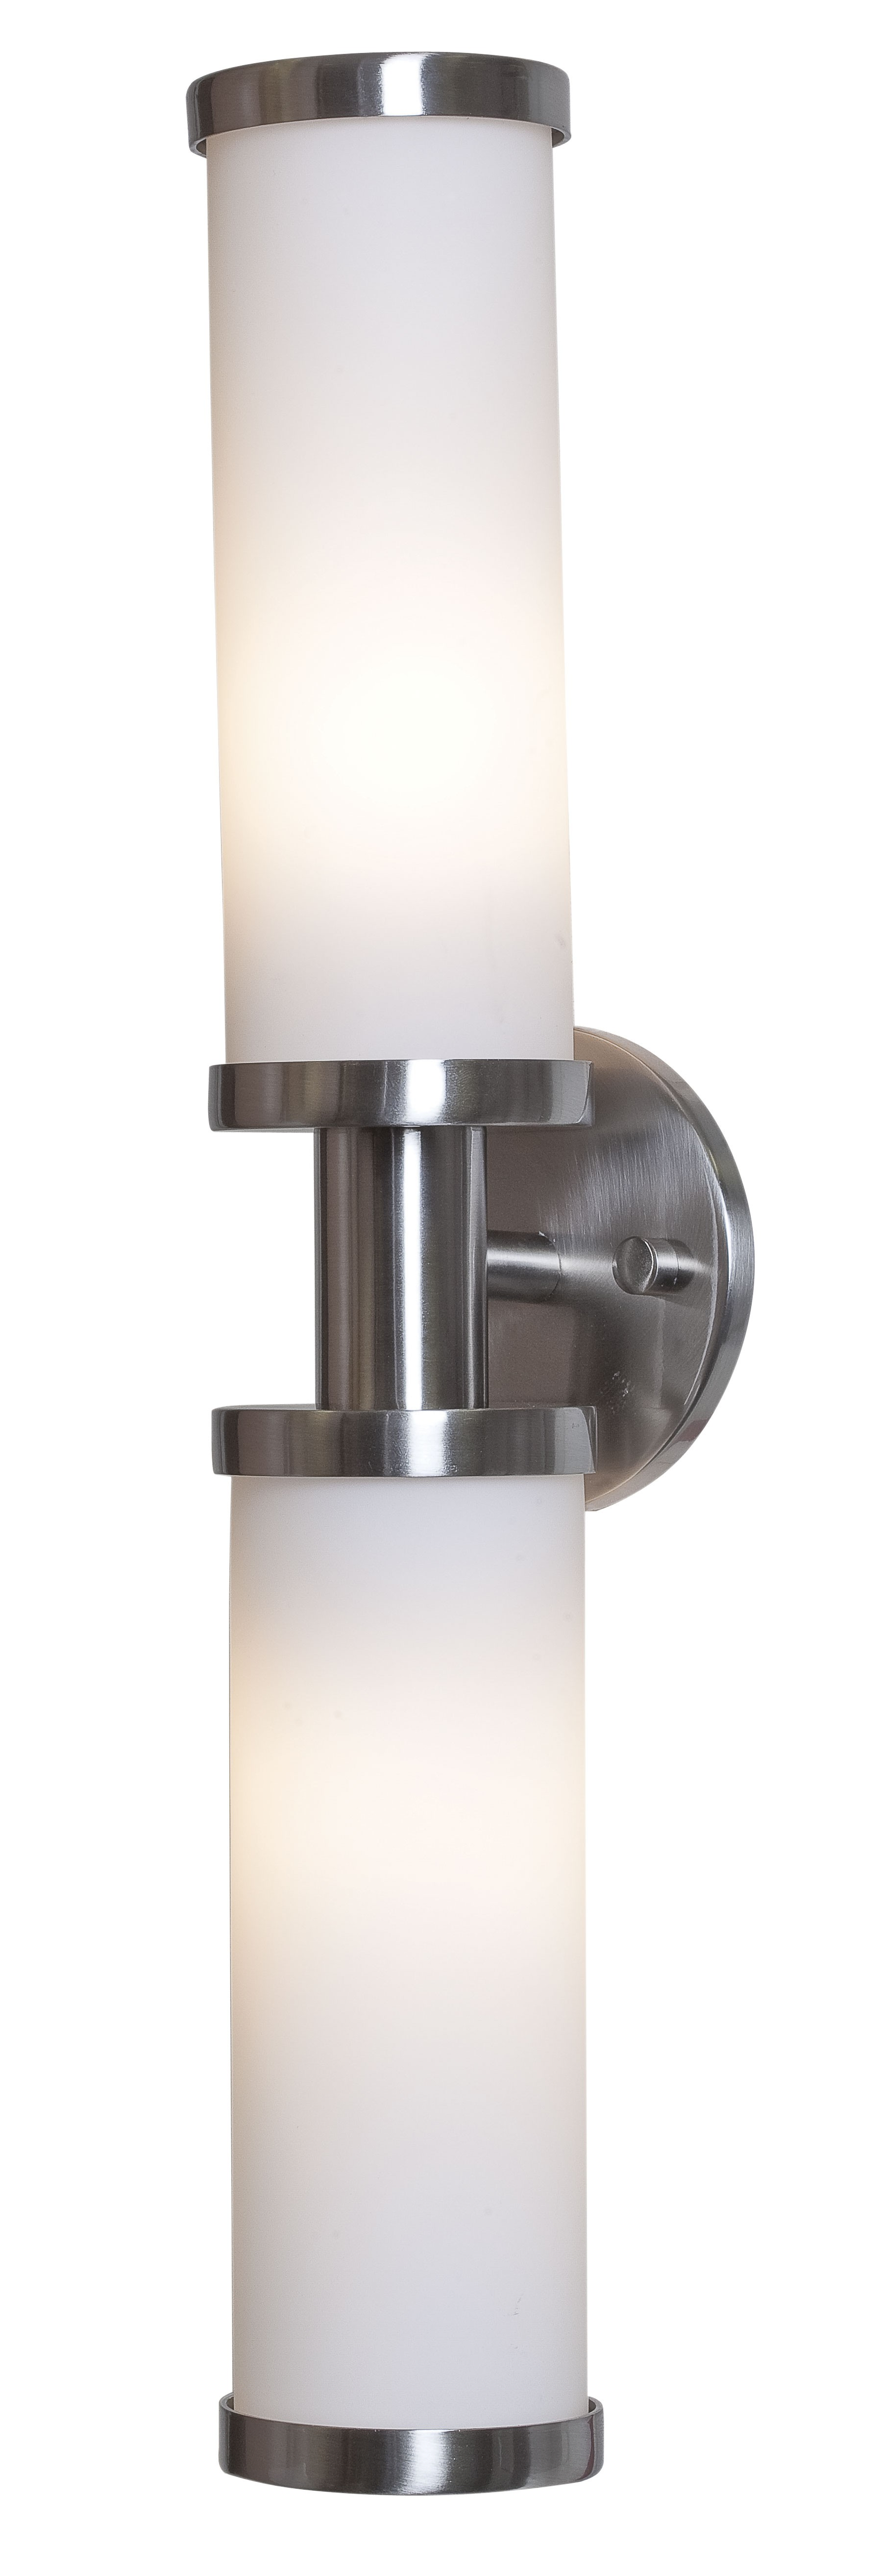 Access Lighting 50570orbopl Zylinder Wall Fixture. Open Concept Homes. Front Sidewalk Landscaping Ideas. Modern Daybed. Granite Bar Tops. Tiki Bar Ideas. White And Gold Bedroom Decor. Mirrored Buffet Table. Home Office